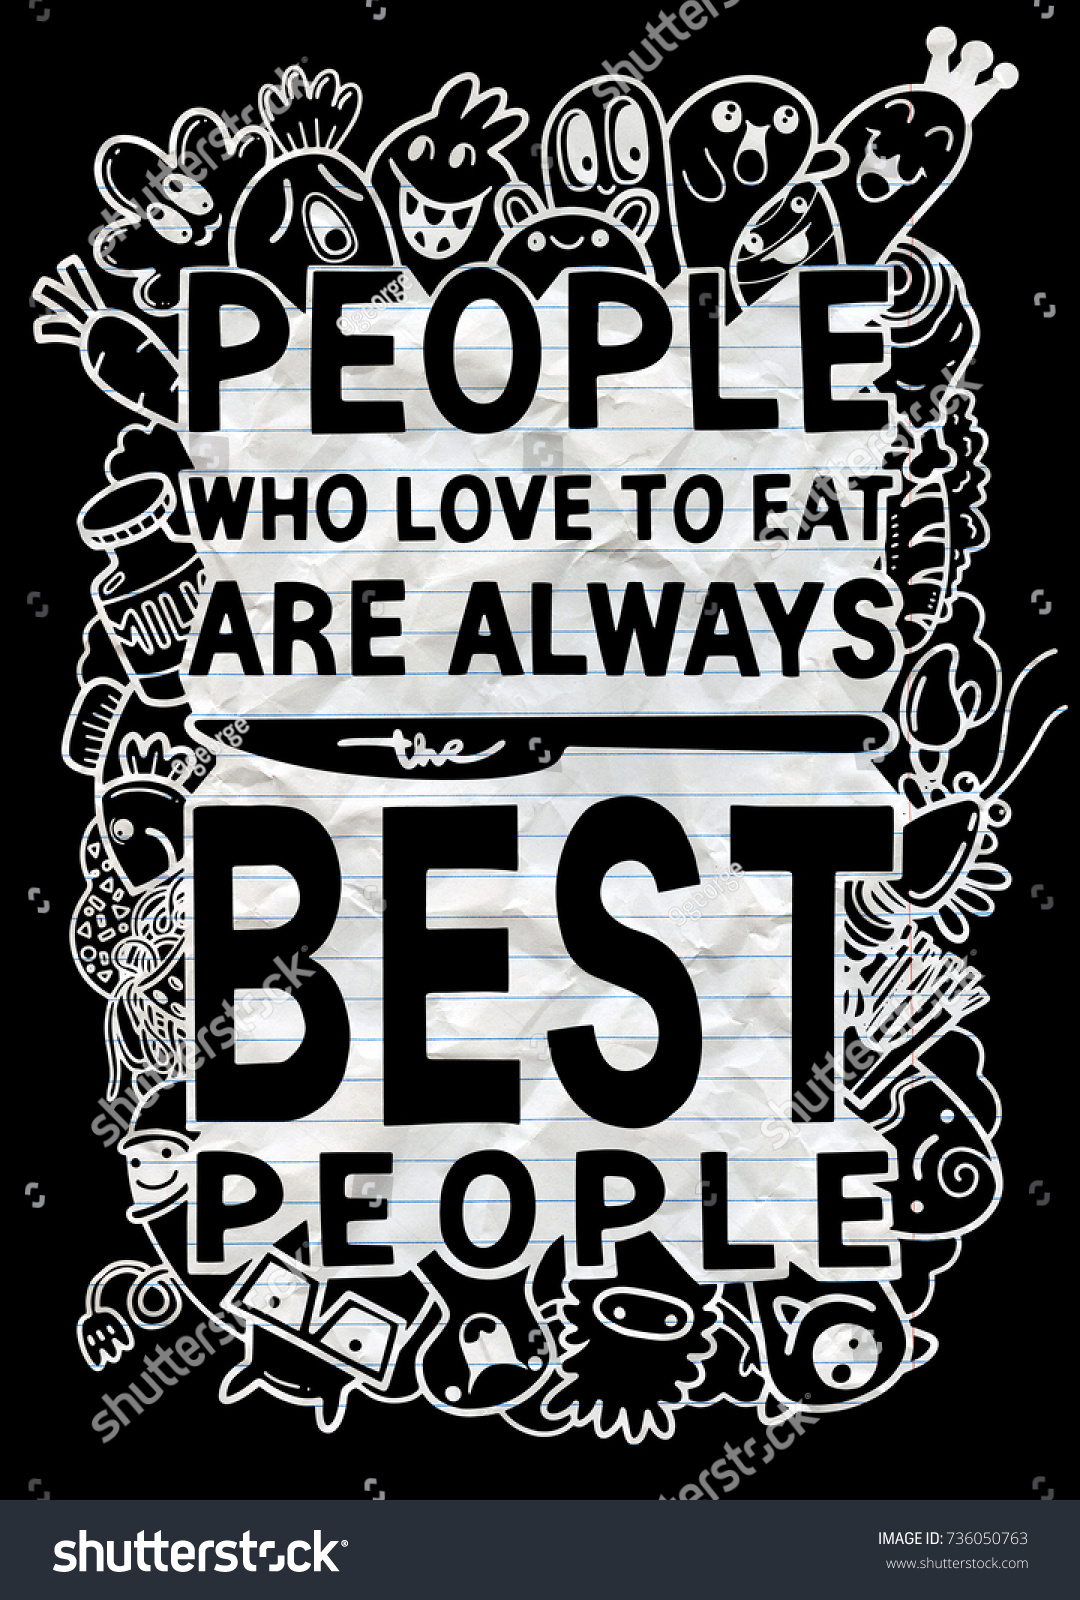 People Who Love To Eat Typography Kitchen Poster. Cut Monster With Food  Related Quote.